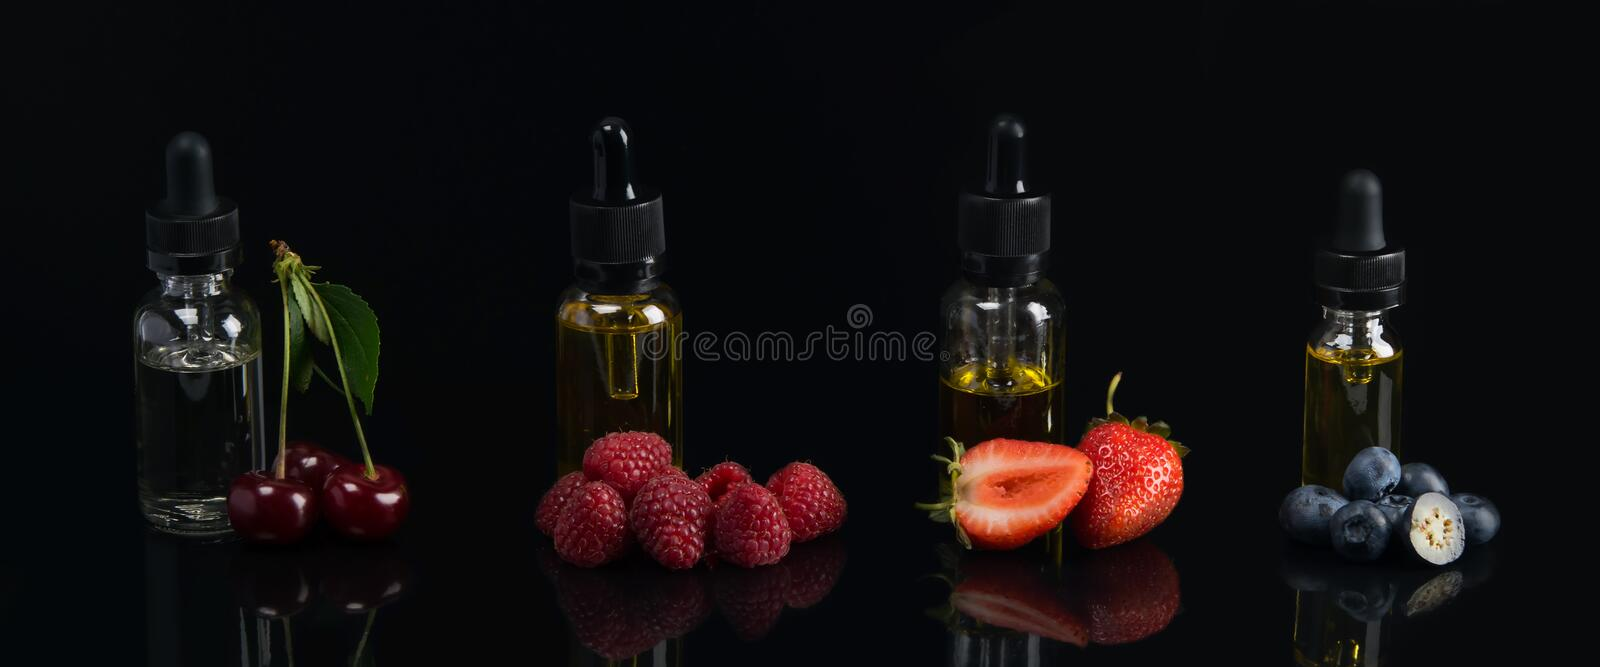 Four flavor flavors, in glass containers, on a black background, with a taste of cherries, strawberries, raspberries, blueberries, stock photos